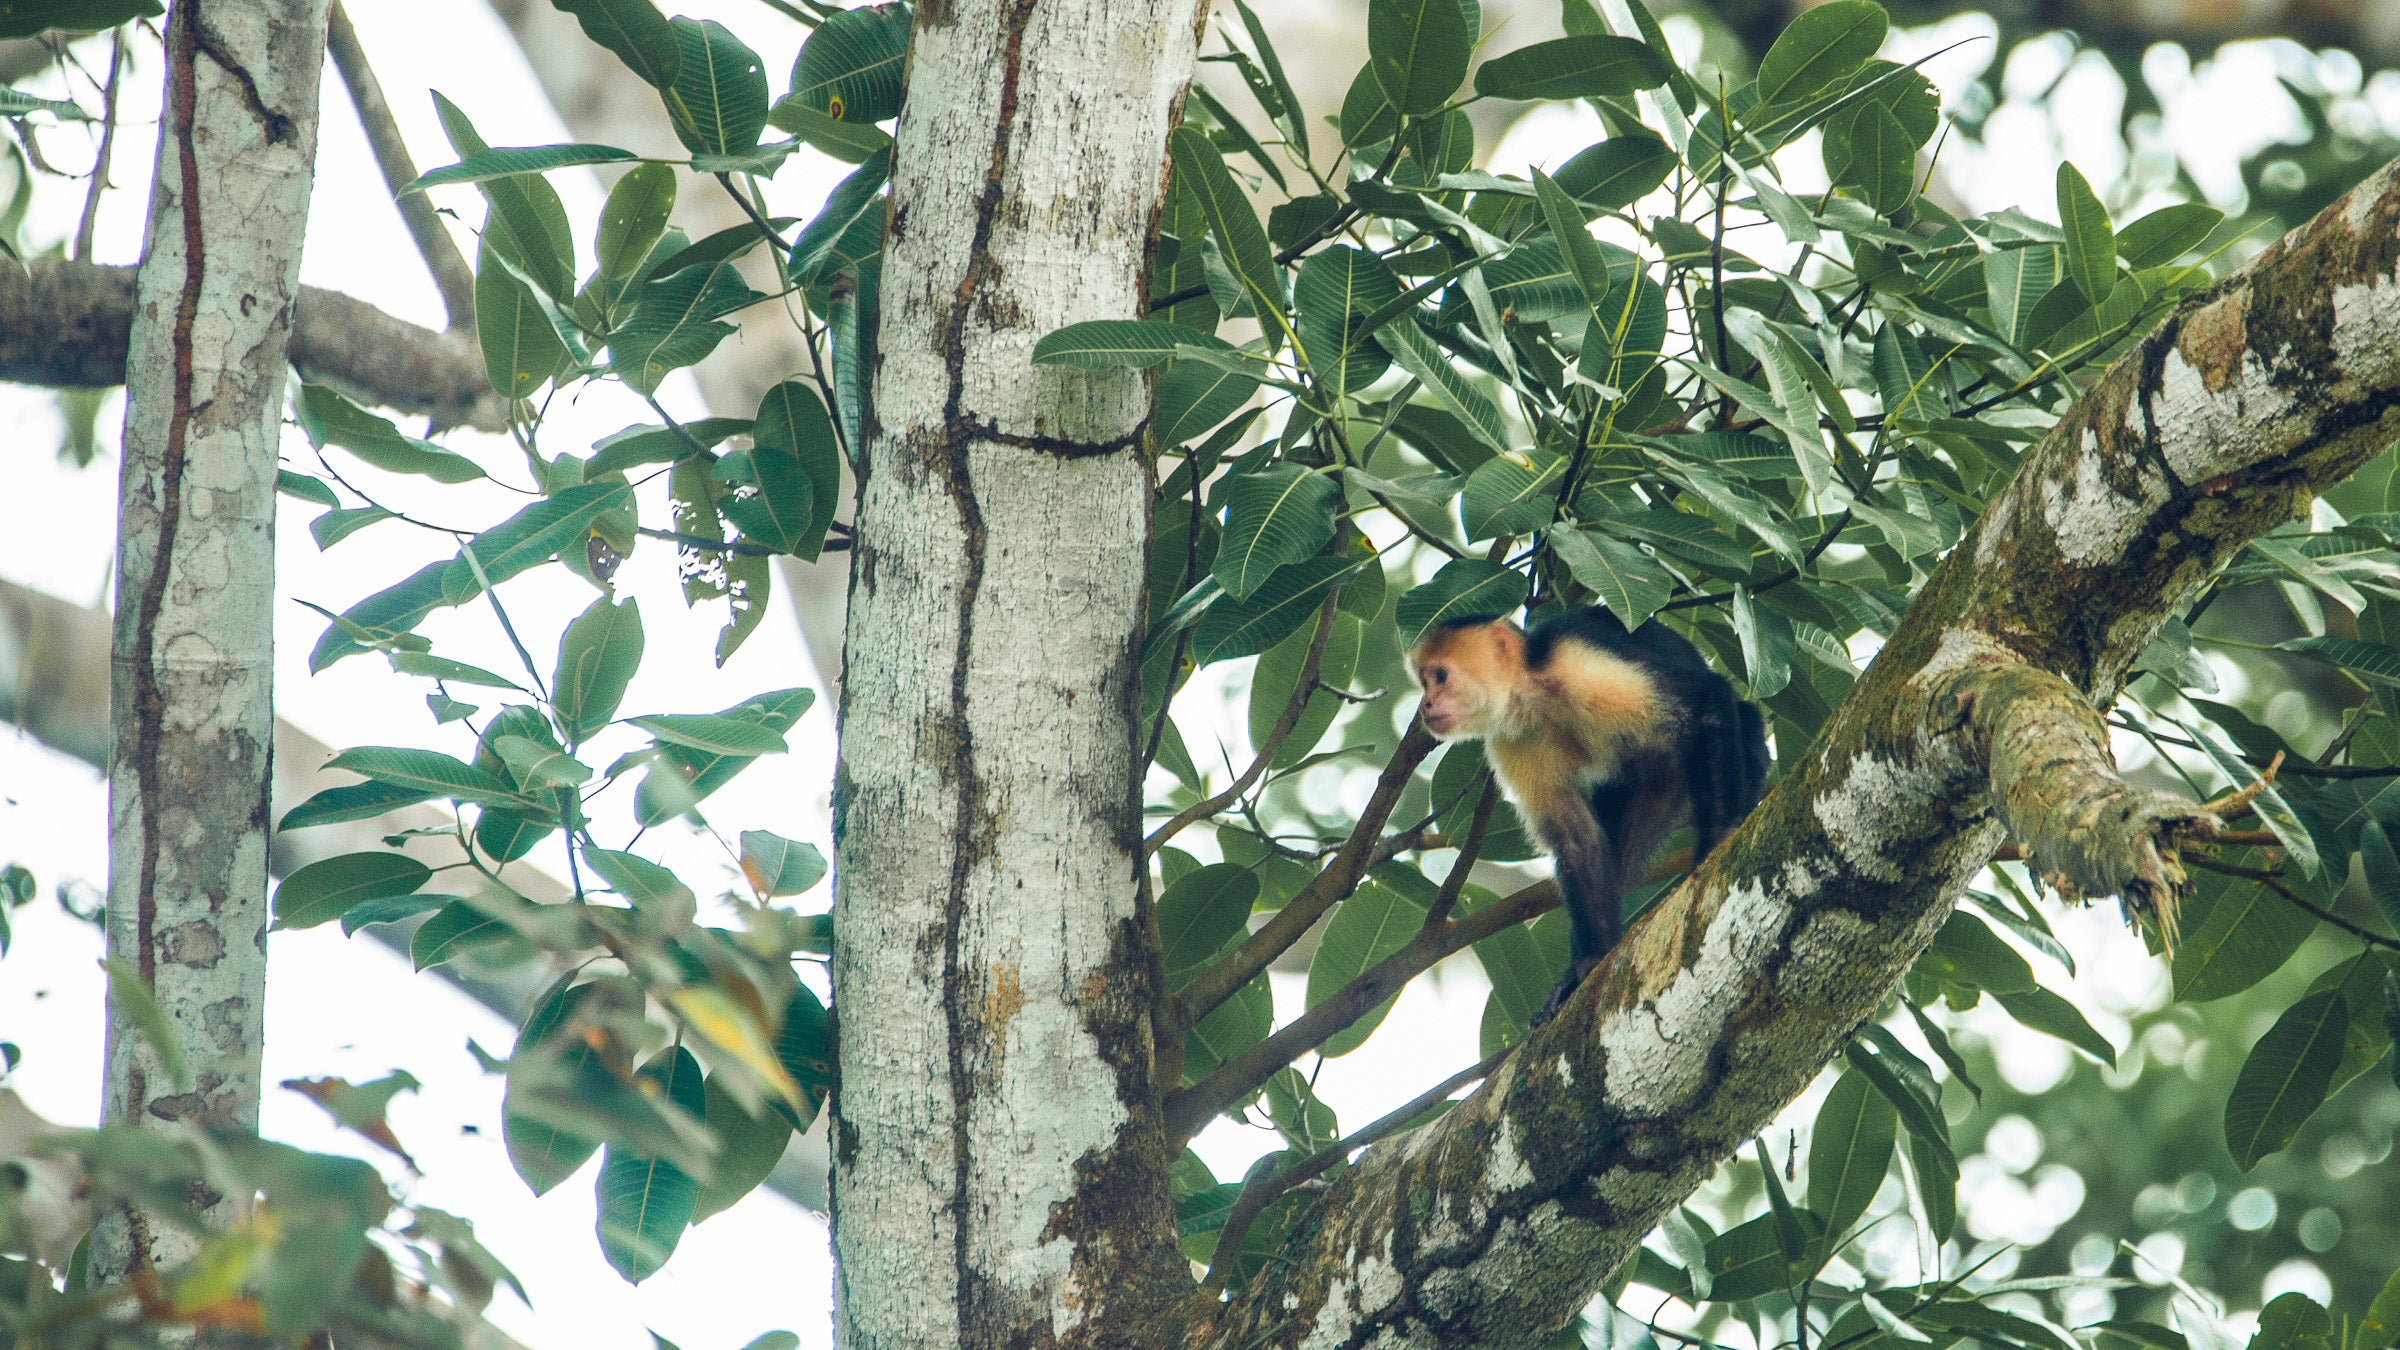 Costa Rican capuchin monkey perched in a tree